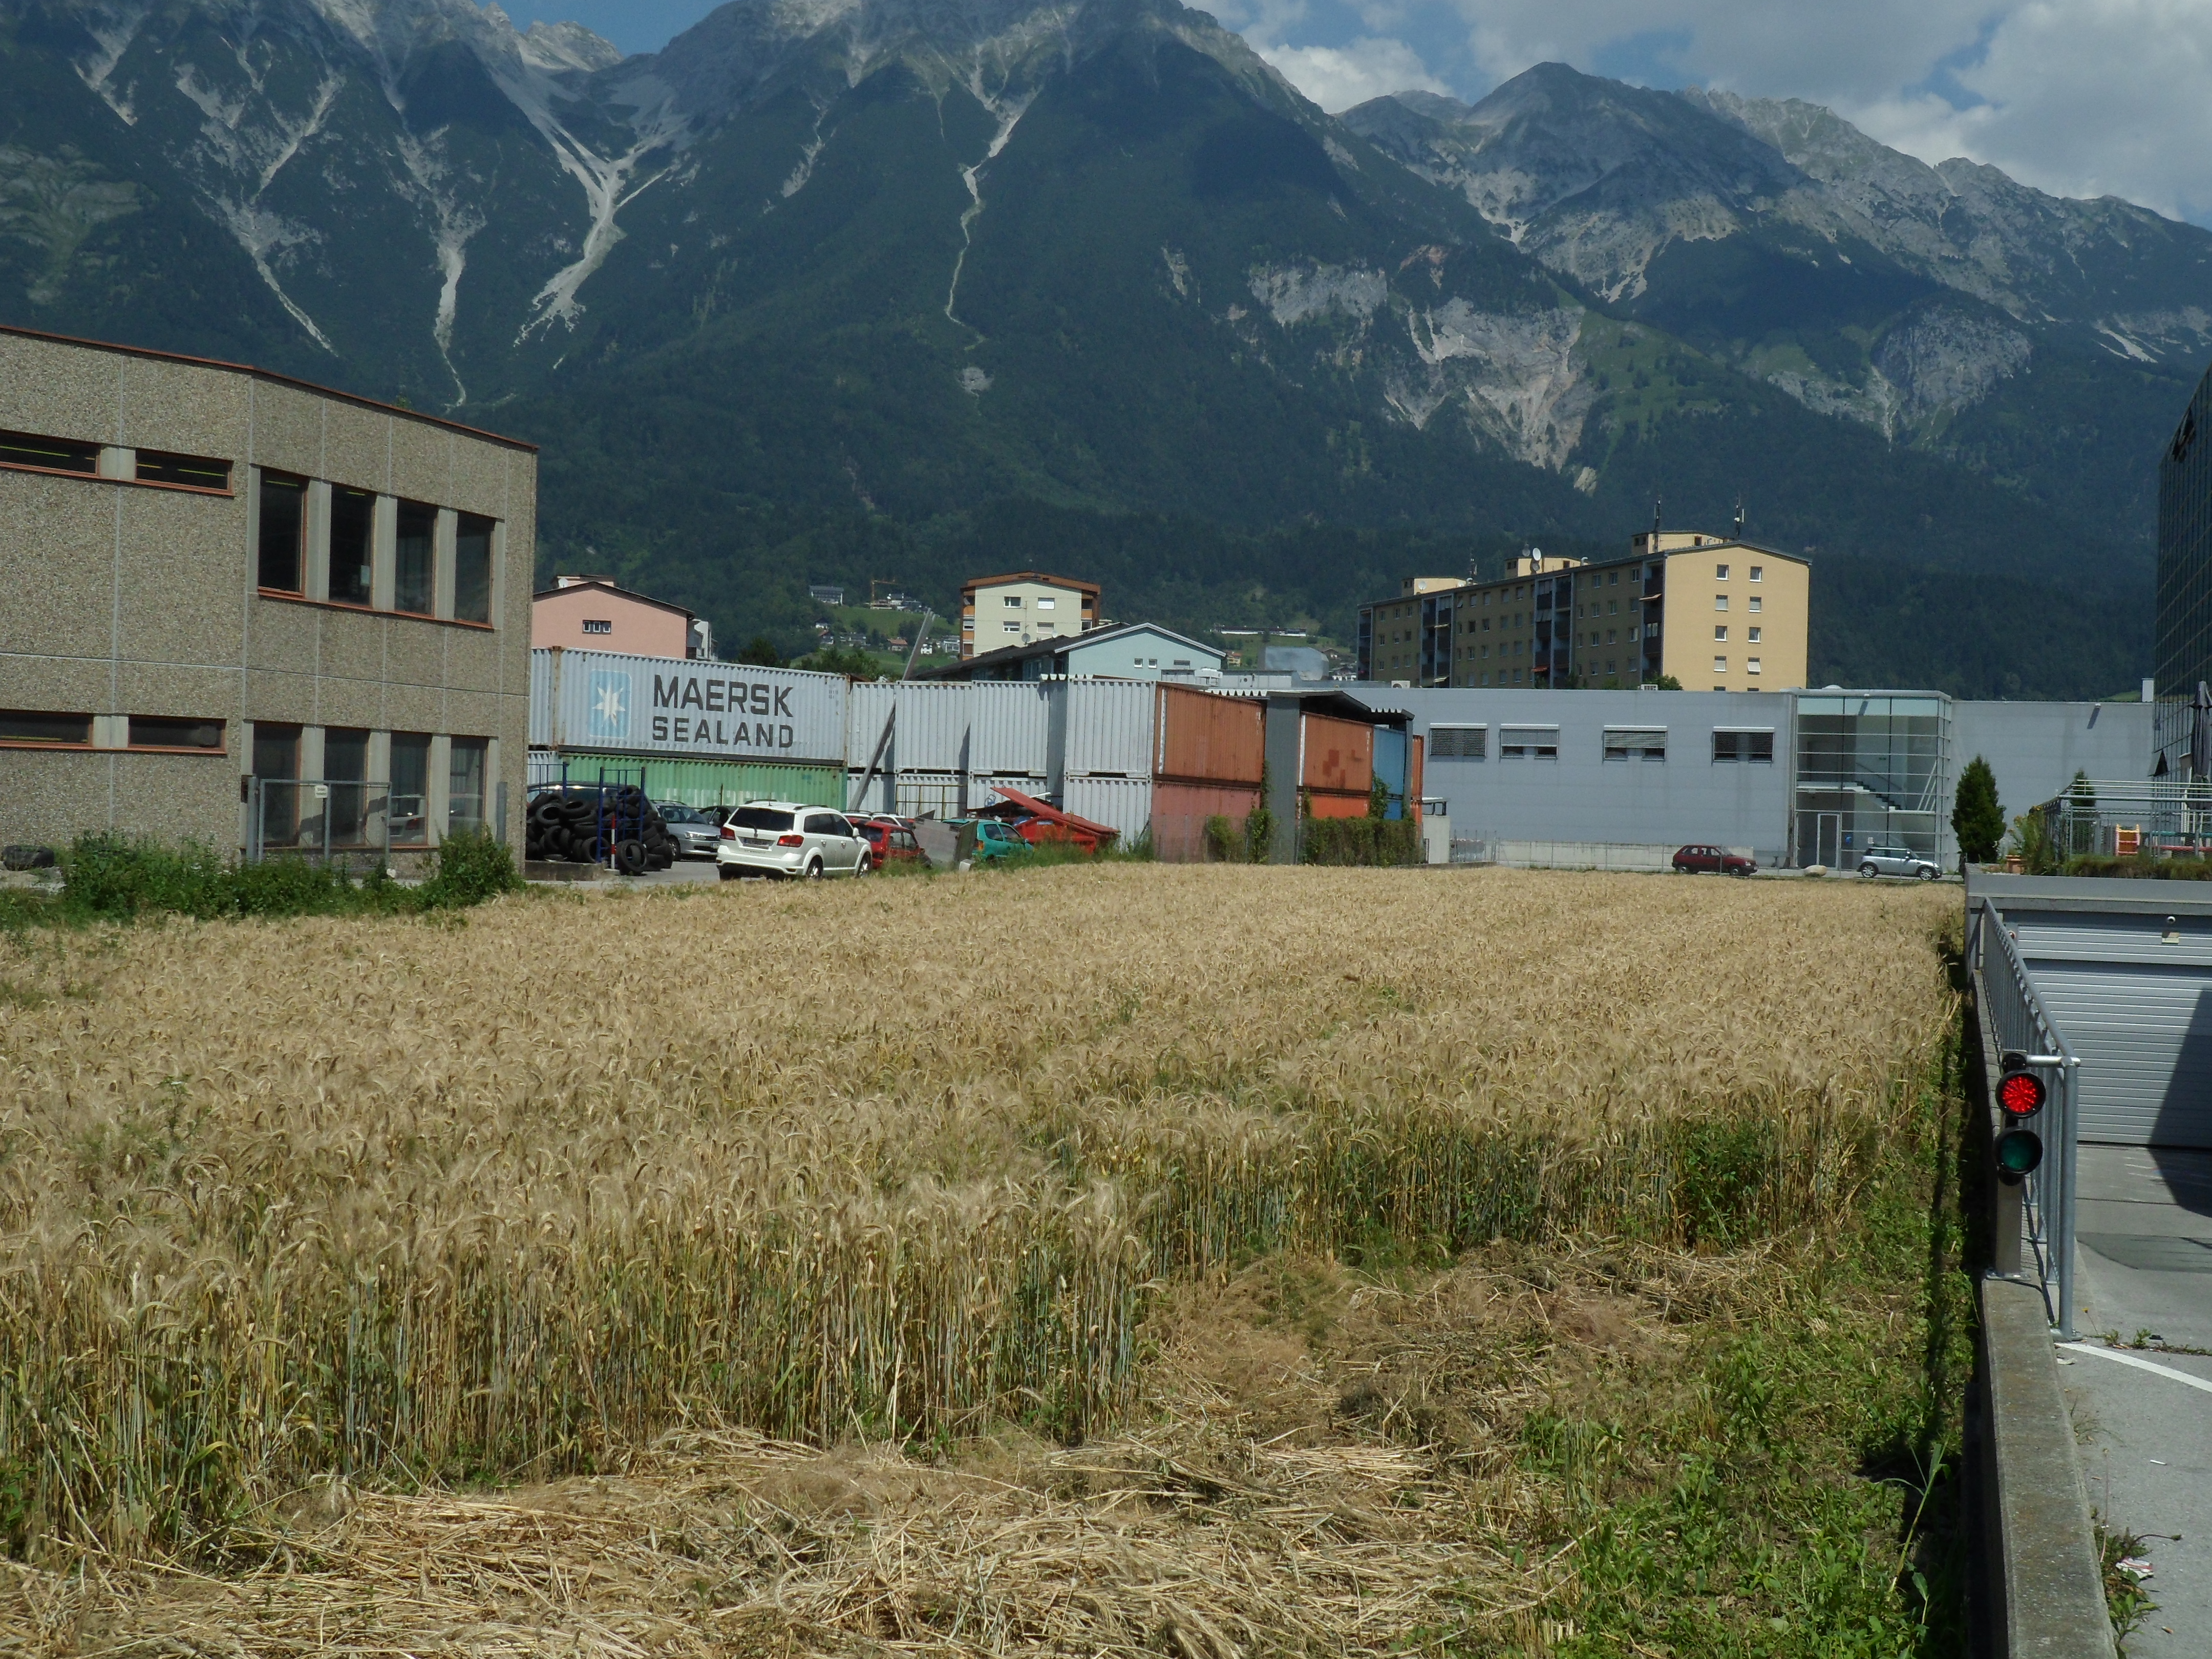 In July, the grain was high and almost ready to harvest.